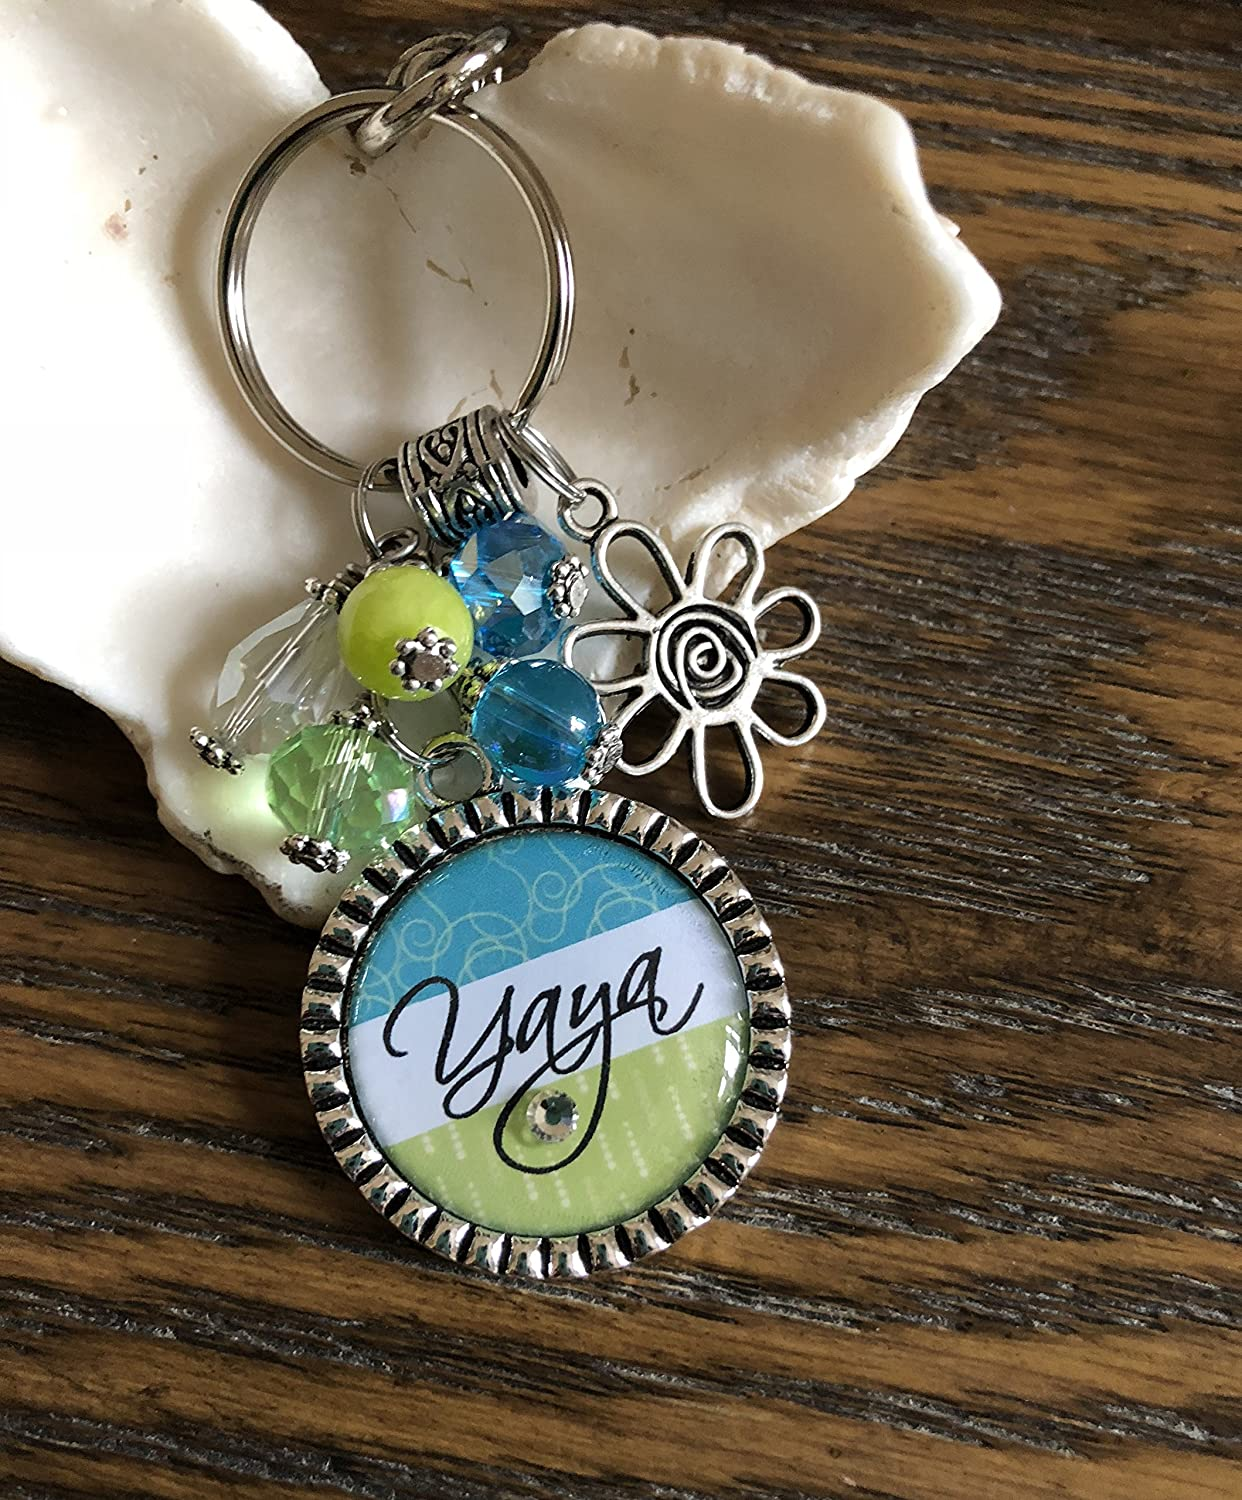 Customizable Yaya keychain silver daisy flower charm Pendant beaded key chain or necklace Happy birthday gift Personalized necklace YOUR NAME HERE 40th Birthday gift